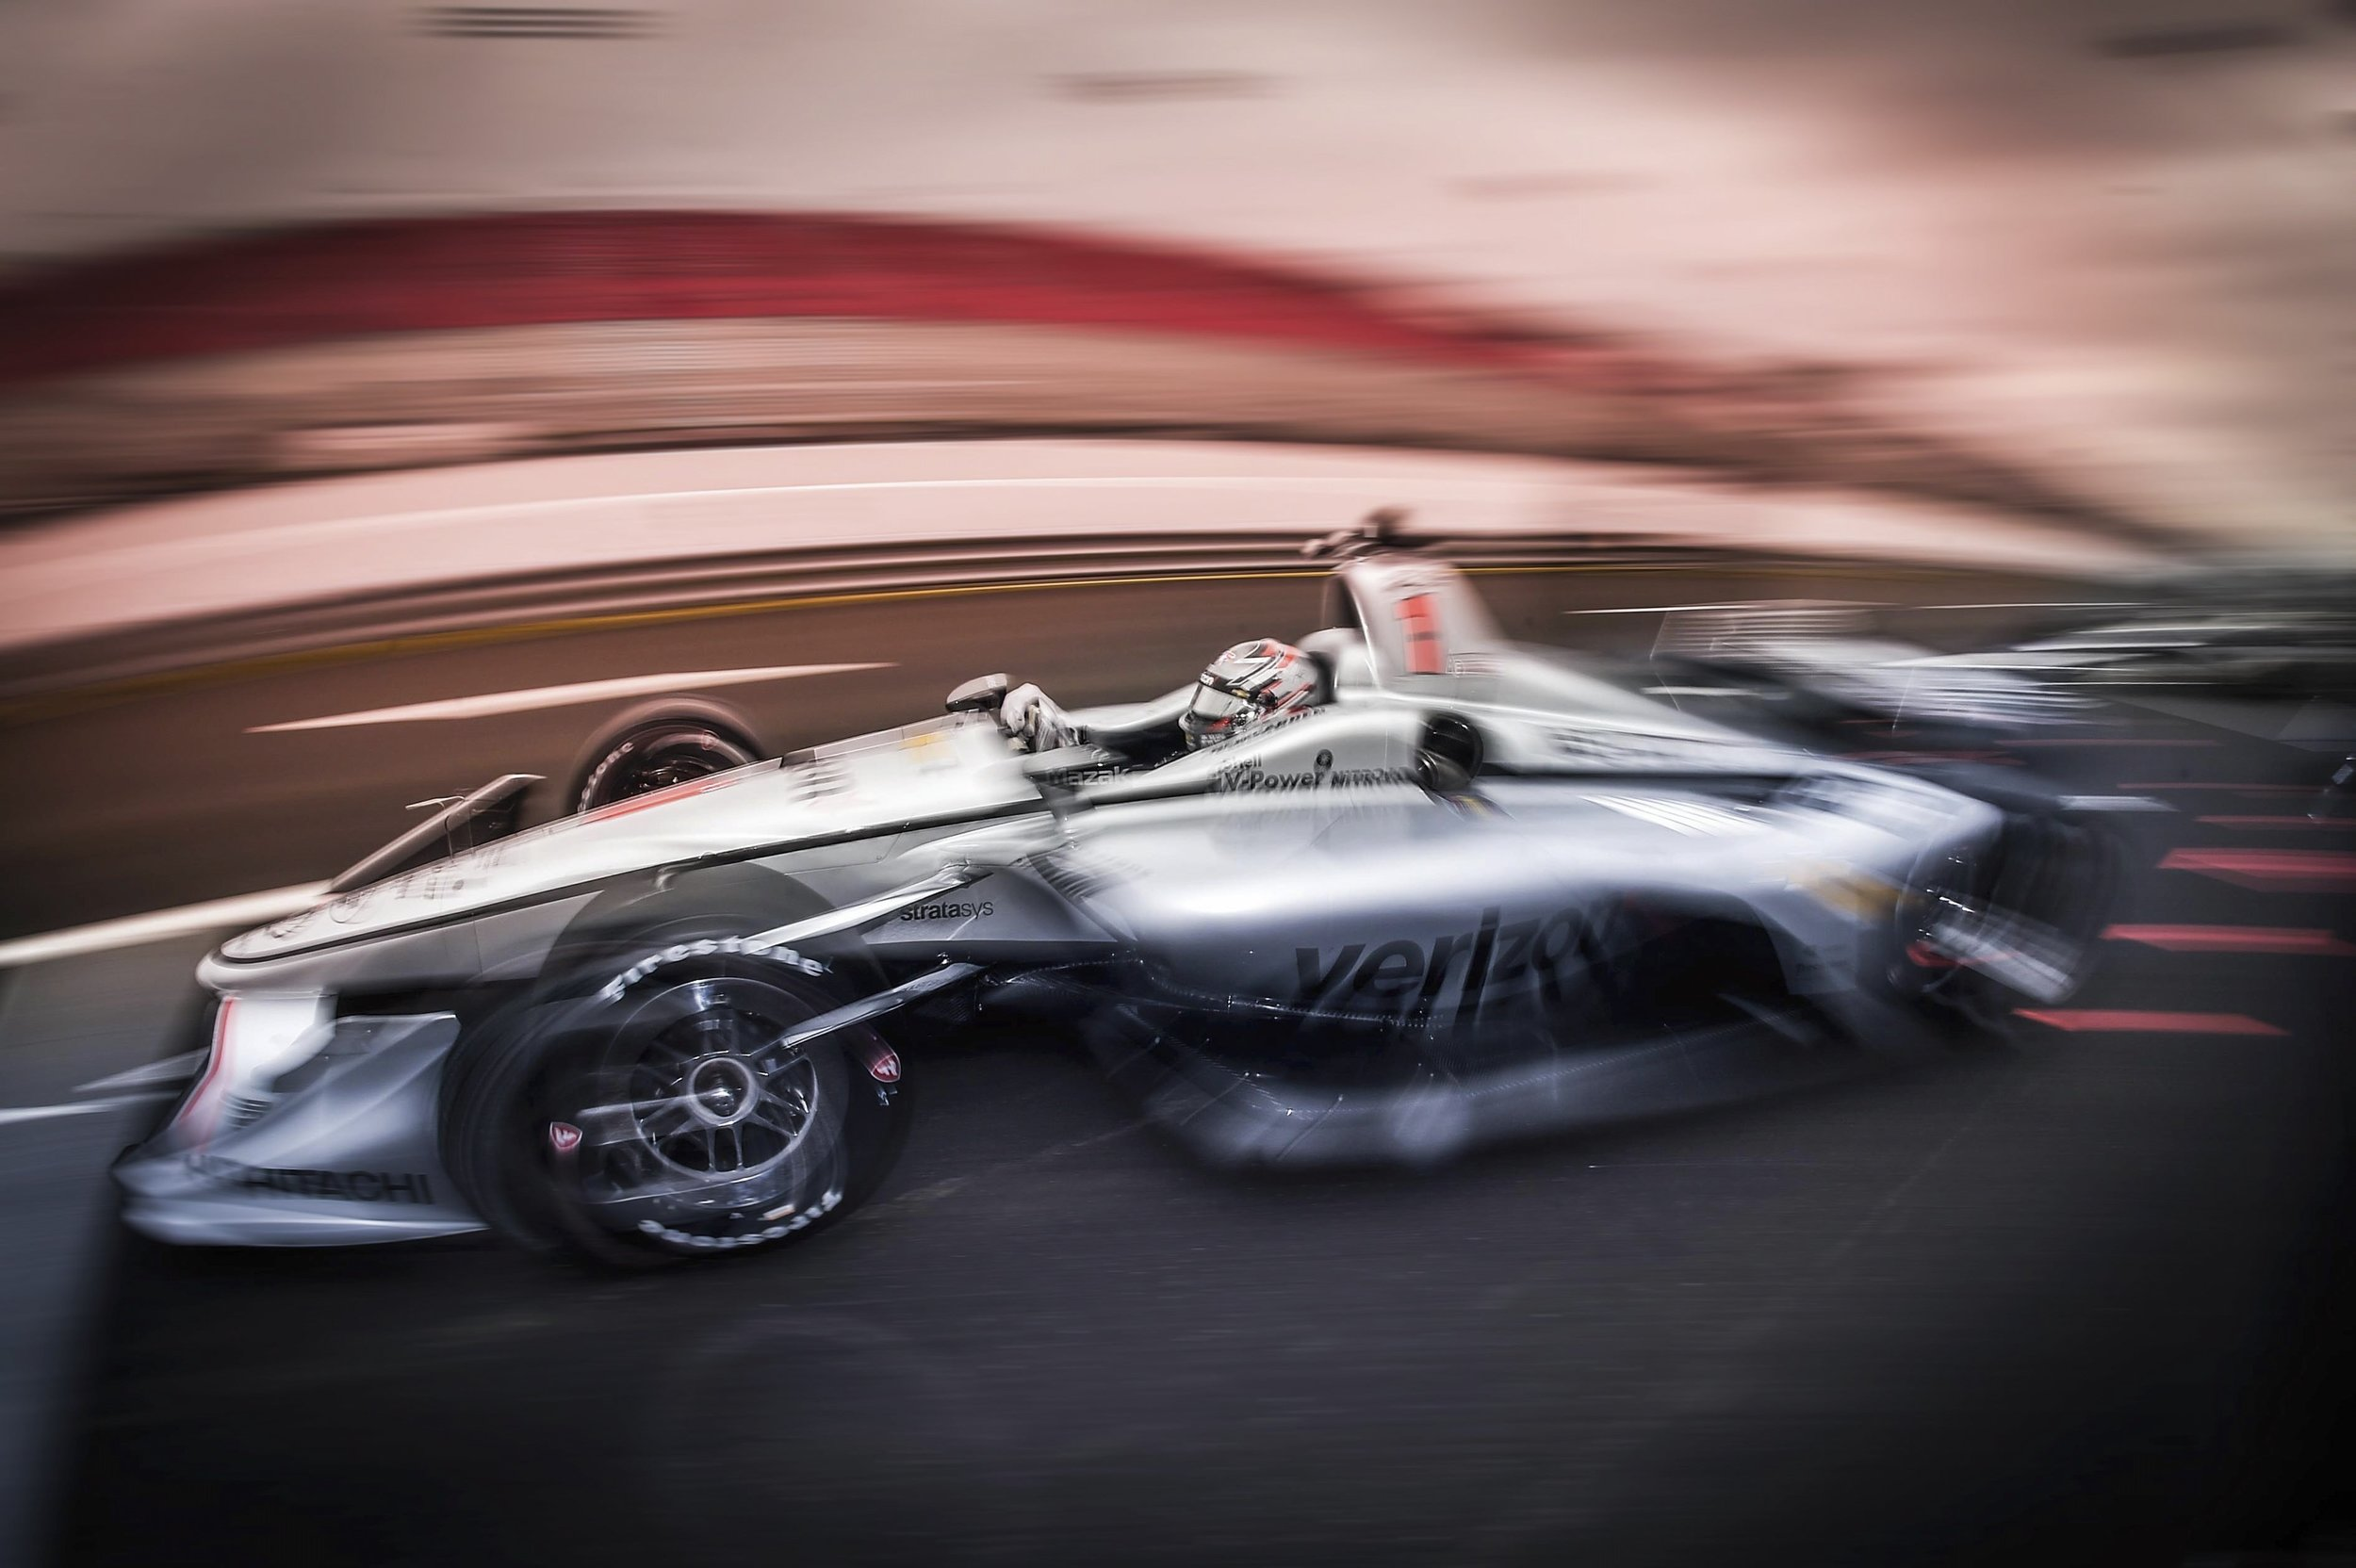 I love this photo, Indycars are sexy, fast, loud, aggressive and somehow smooth all at the same time. This image proves that.